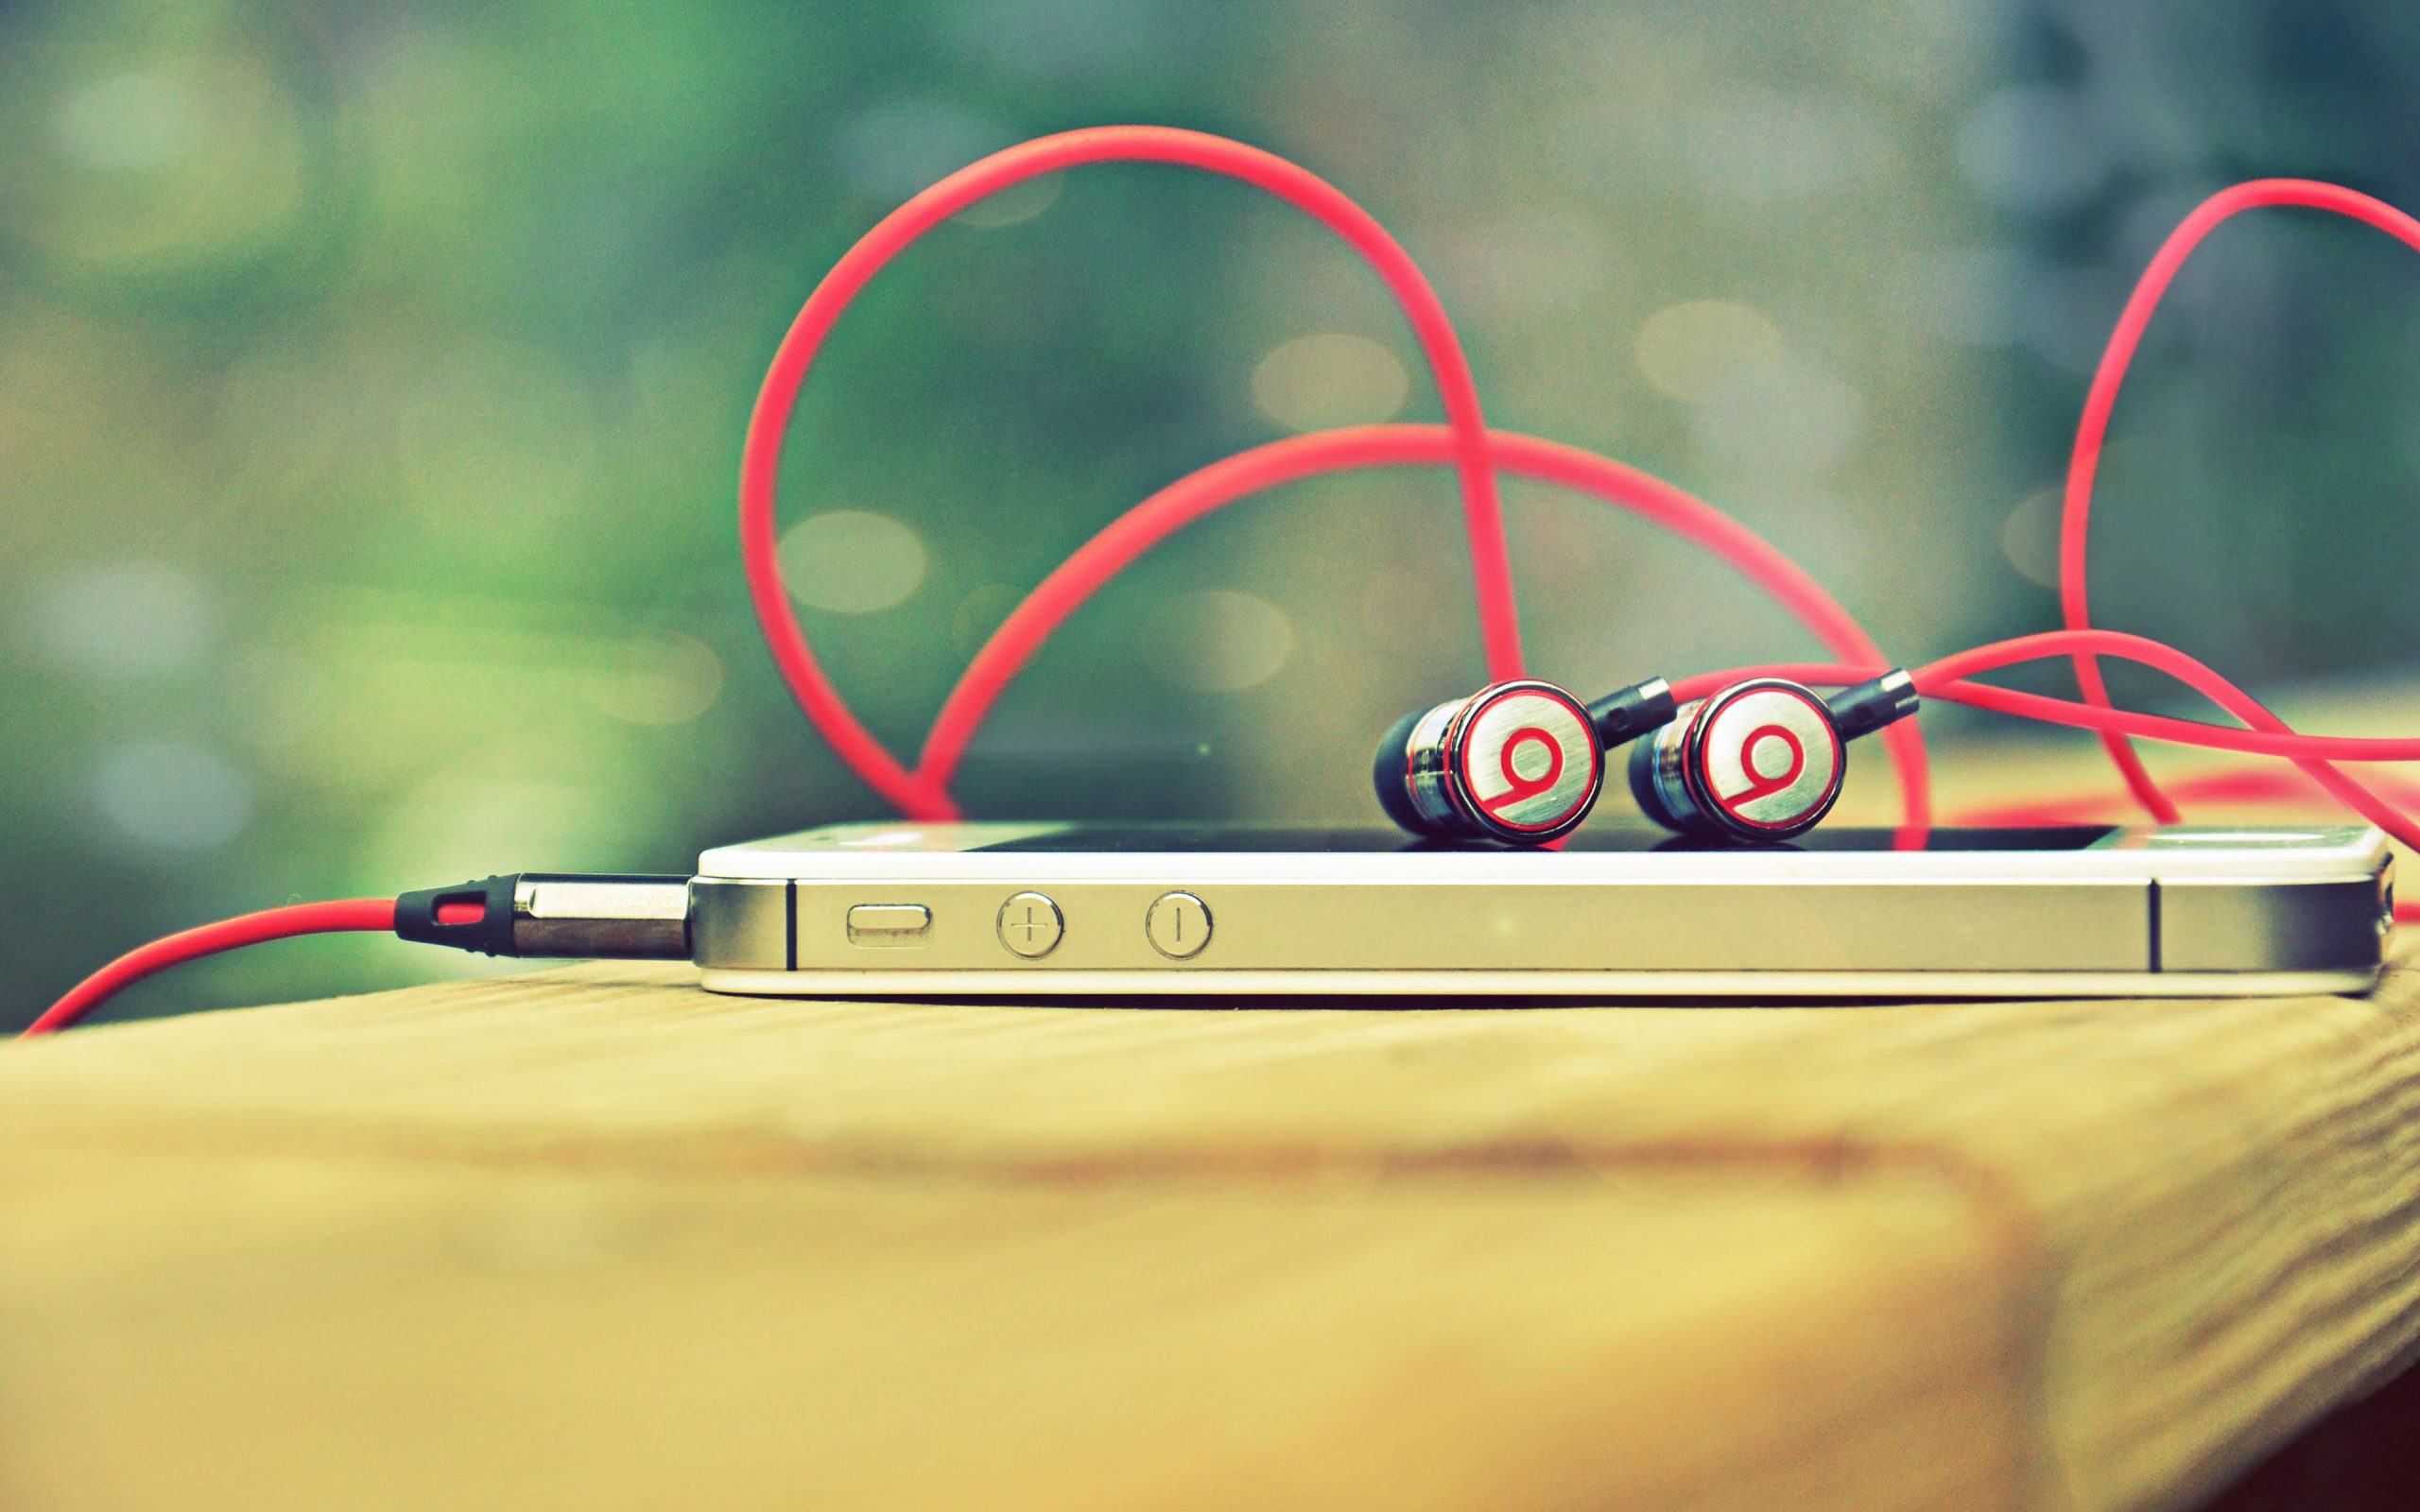 Great Wallpaper Music Iphone 4s - music-iphone-beats-red-headset-4k-wallpaper-2560x1600  Perfect Image Reference_104766.jpg